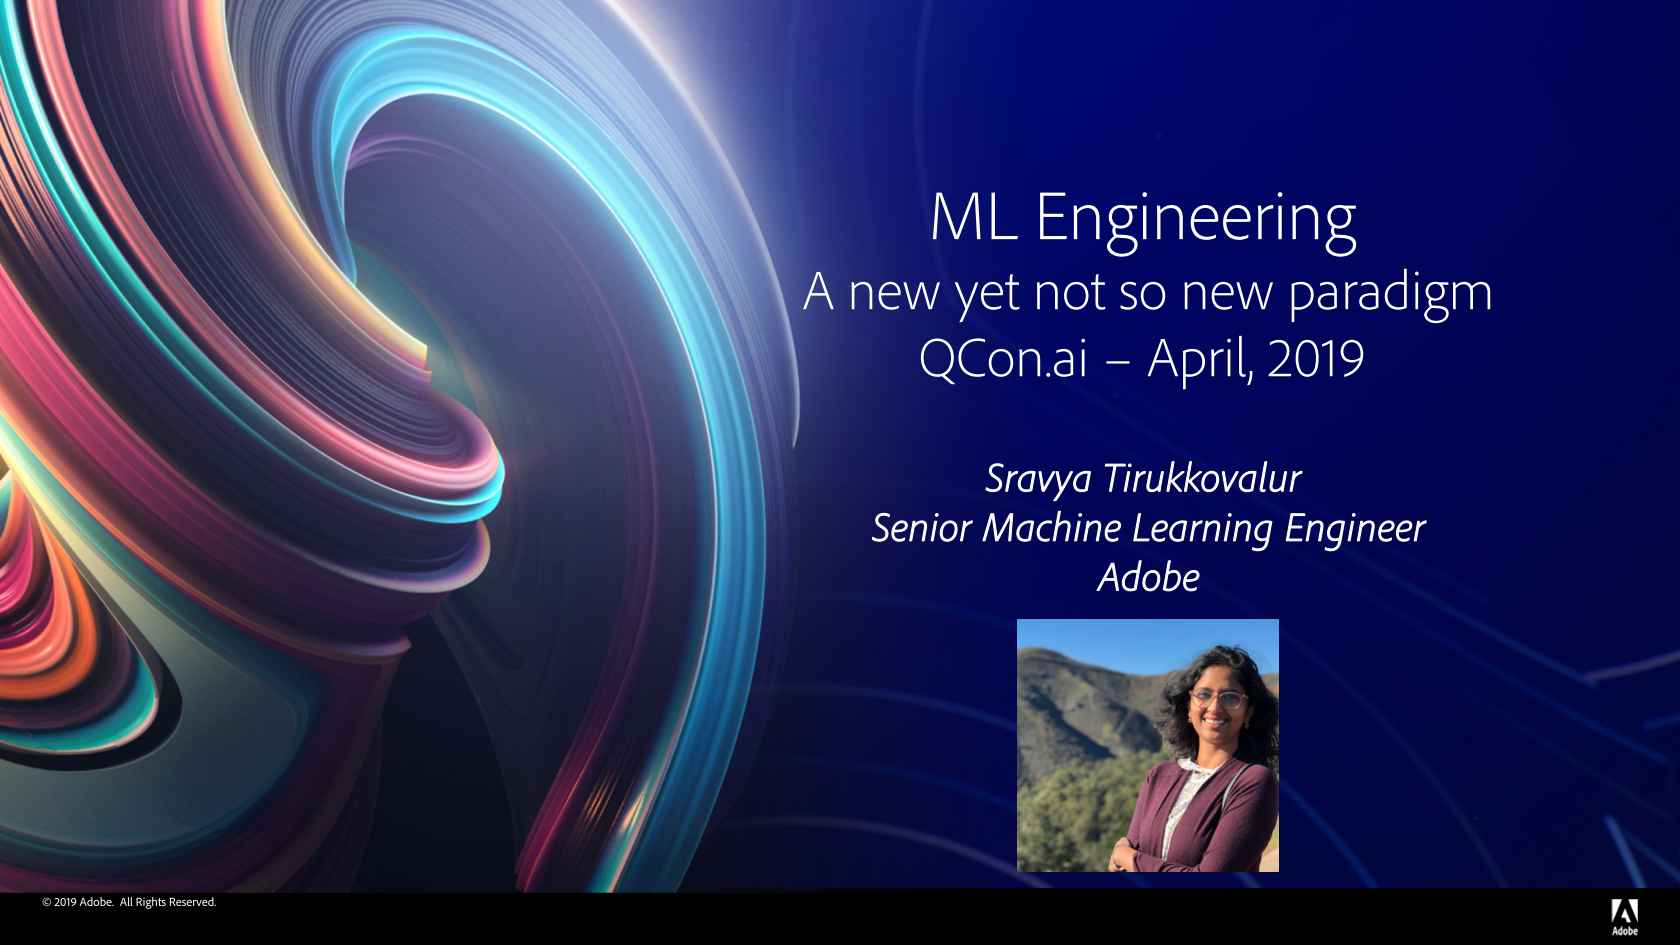 Machine Learning Engineering - A New Yet Not So New Paradigm